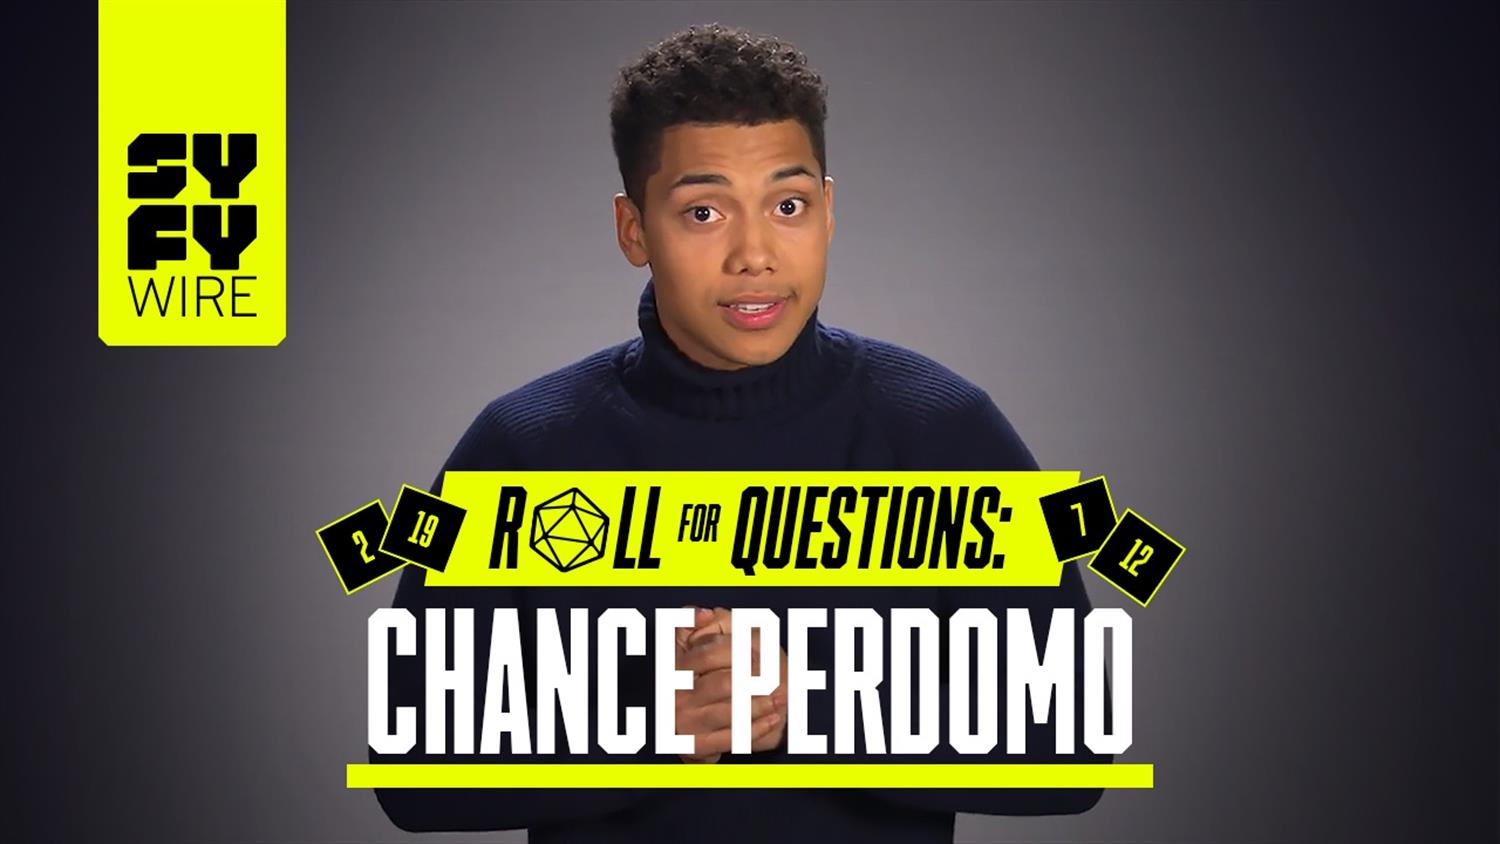 Sabrina's Chance Perdomo Wants To Raise The Dead (Roll For Questions)